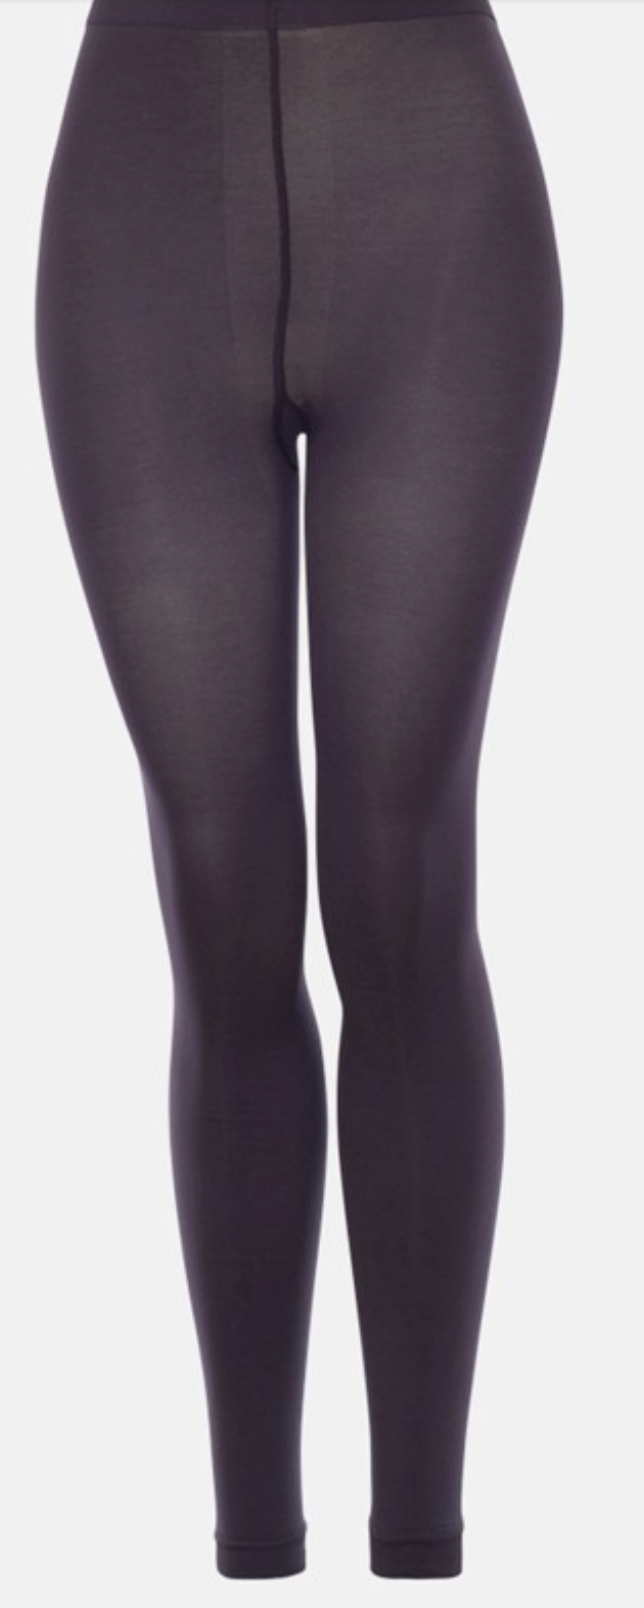 B.ella Erika tights, footless